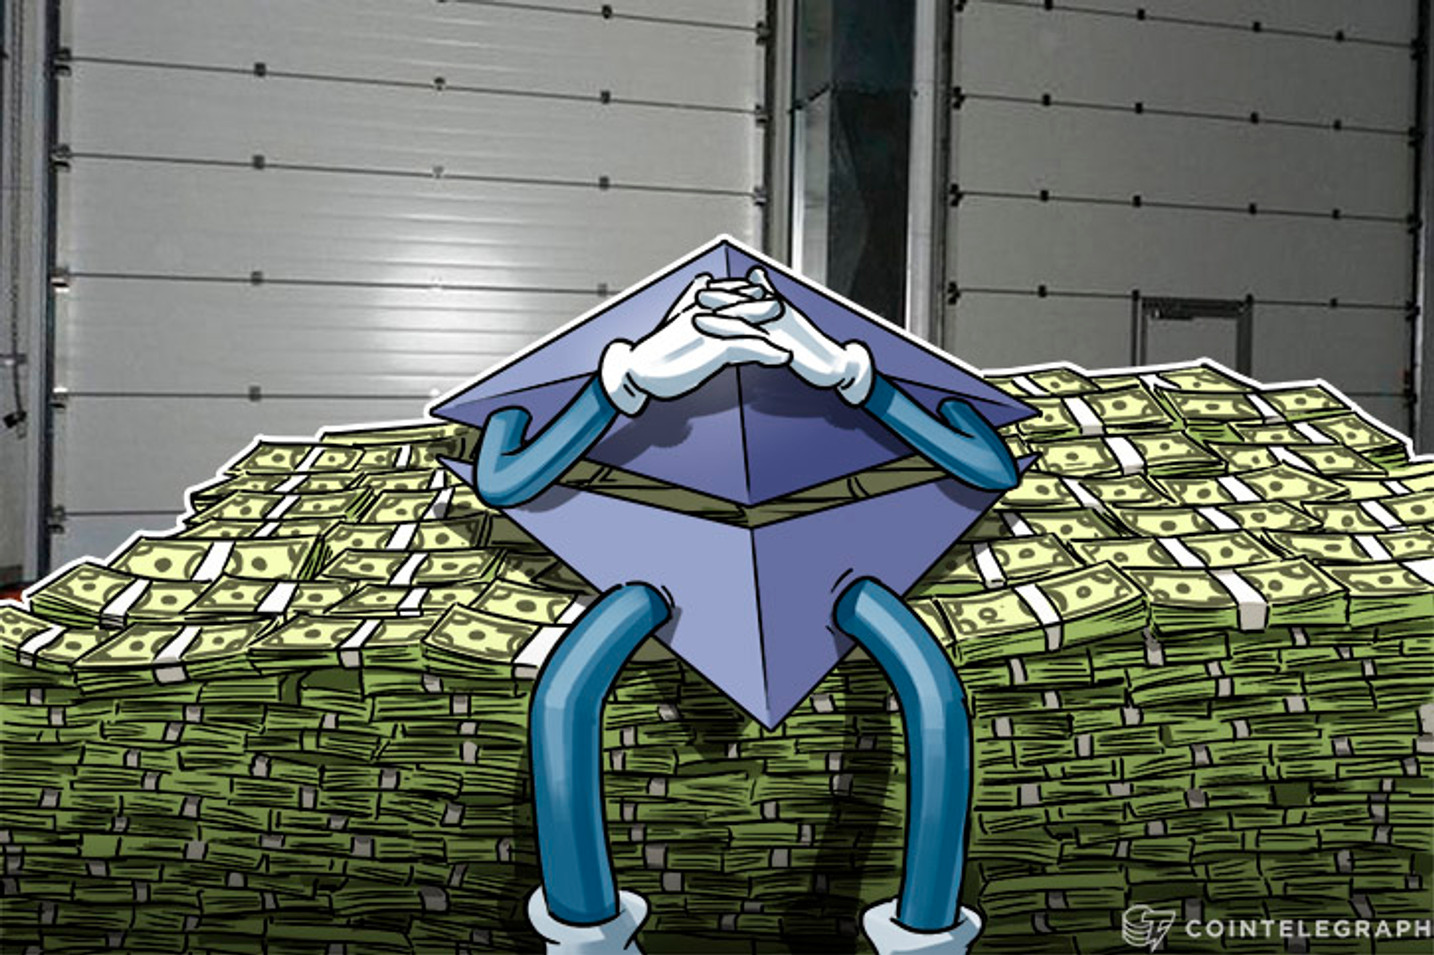 Ethereum Price Nears $50, Unusual Trading, Volume Rises From $20 to $450 Million